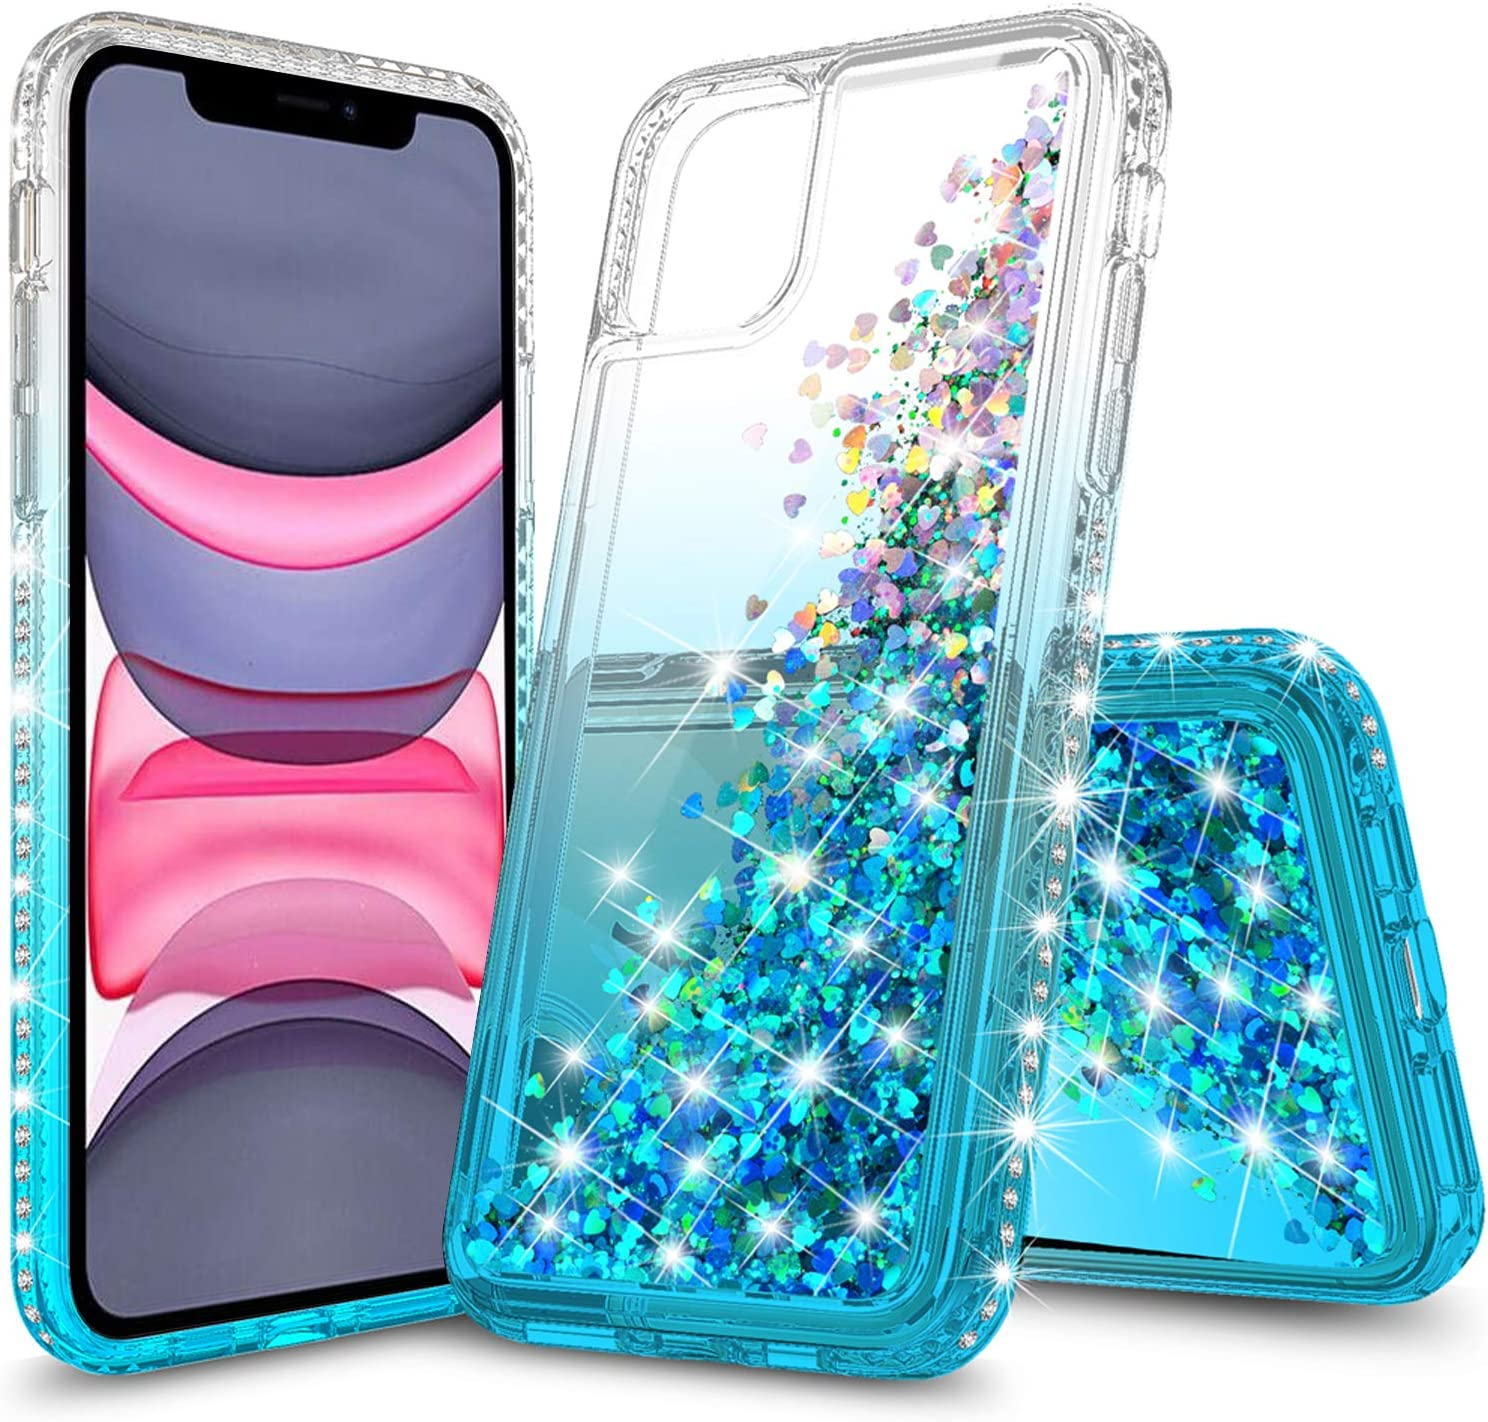 LOVEMECASE iPhone 11 Case for Girls Woman,Glitter Liquid Quicksand Bling Sparkle Flowing Sparkle Shiny Diamond Girls Protective Phone Case for iPhone 11 6.1 inch (Clear/Aqua)